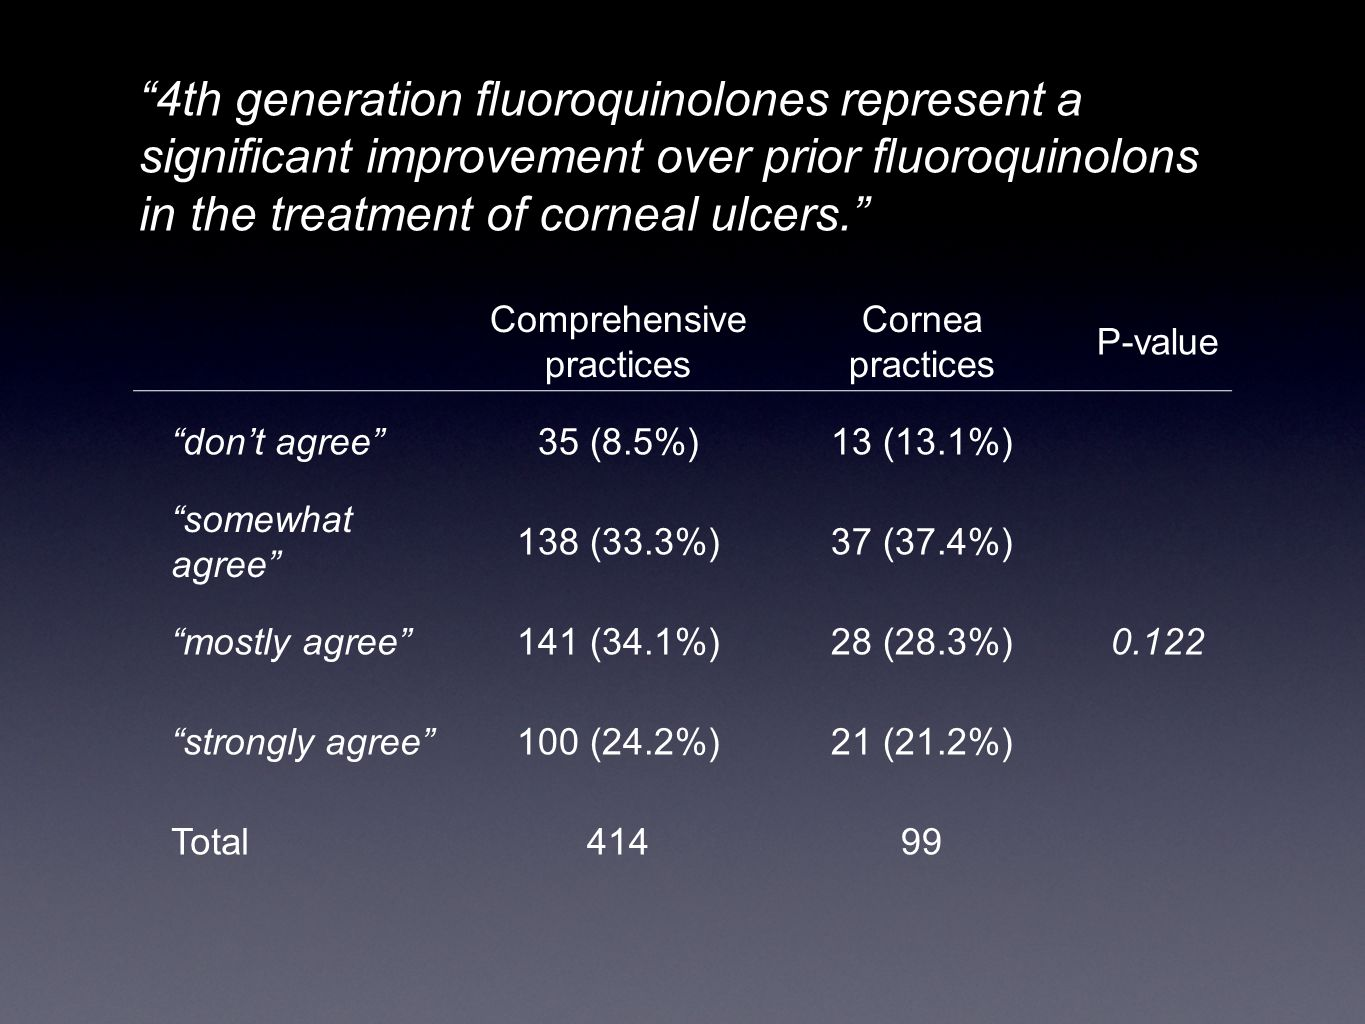 4th generation fluoroquinolones represent a significant improvement over prior fluoroquinolons in the treatment of corneal ulcers. Comprehensive practices Cornea practices P-value don't agree 35 (8.5%)13 (13.1%) 0.122 somewhat agree 138 (33.3%)37 (37.4%) mostly agree 141 (34.1%)28 (28.3%) strongly agree 100 (24.2%)21 (21.2%) Total41499